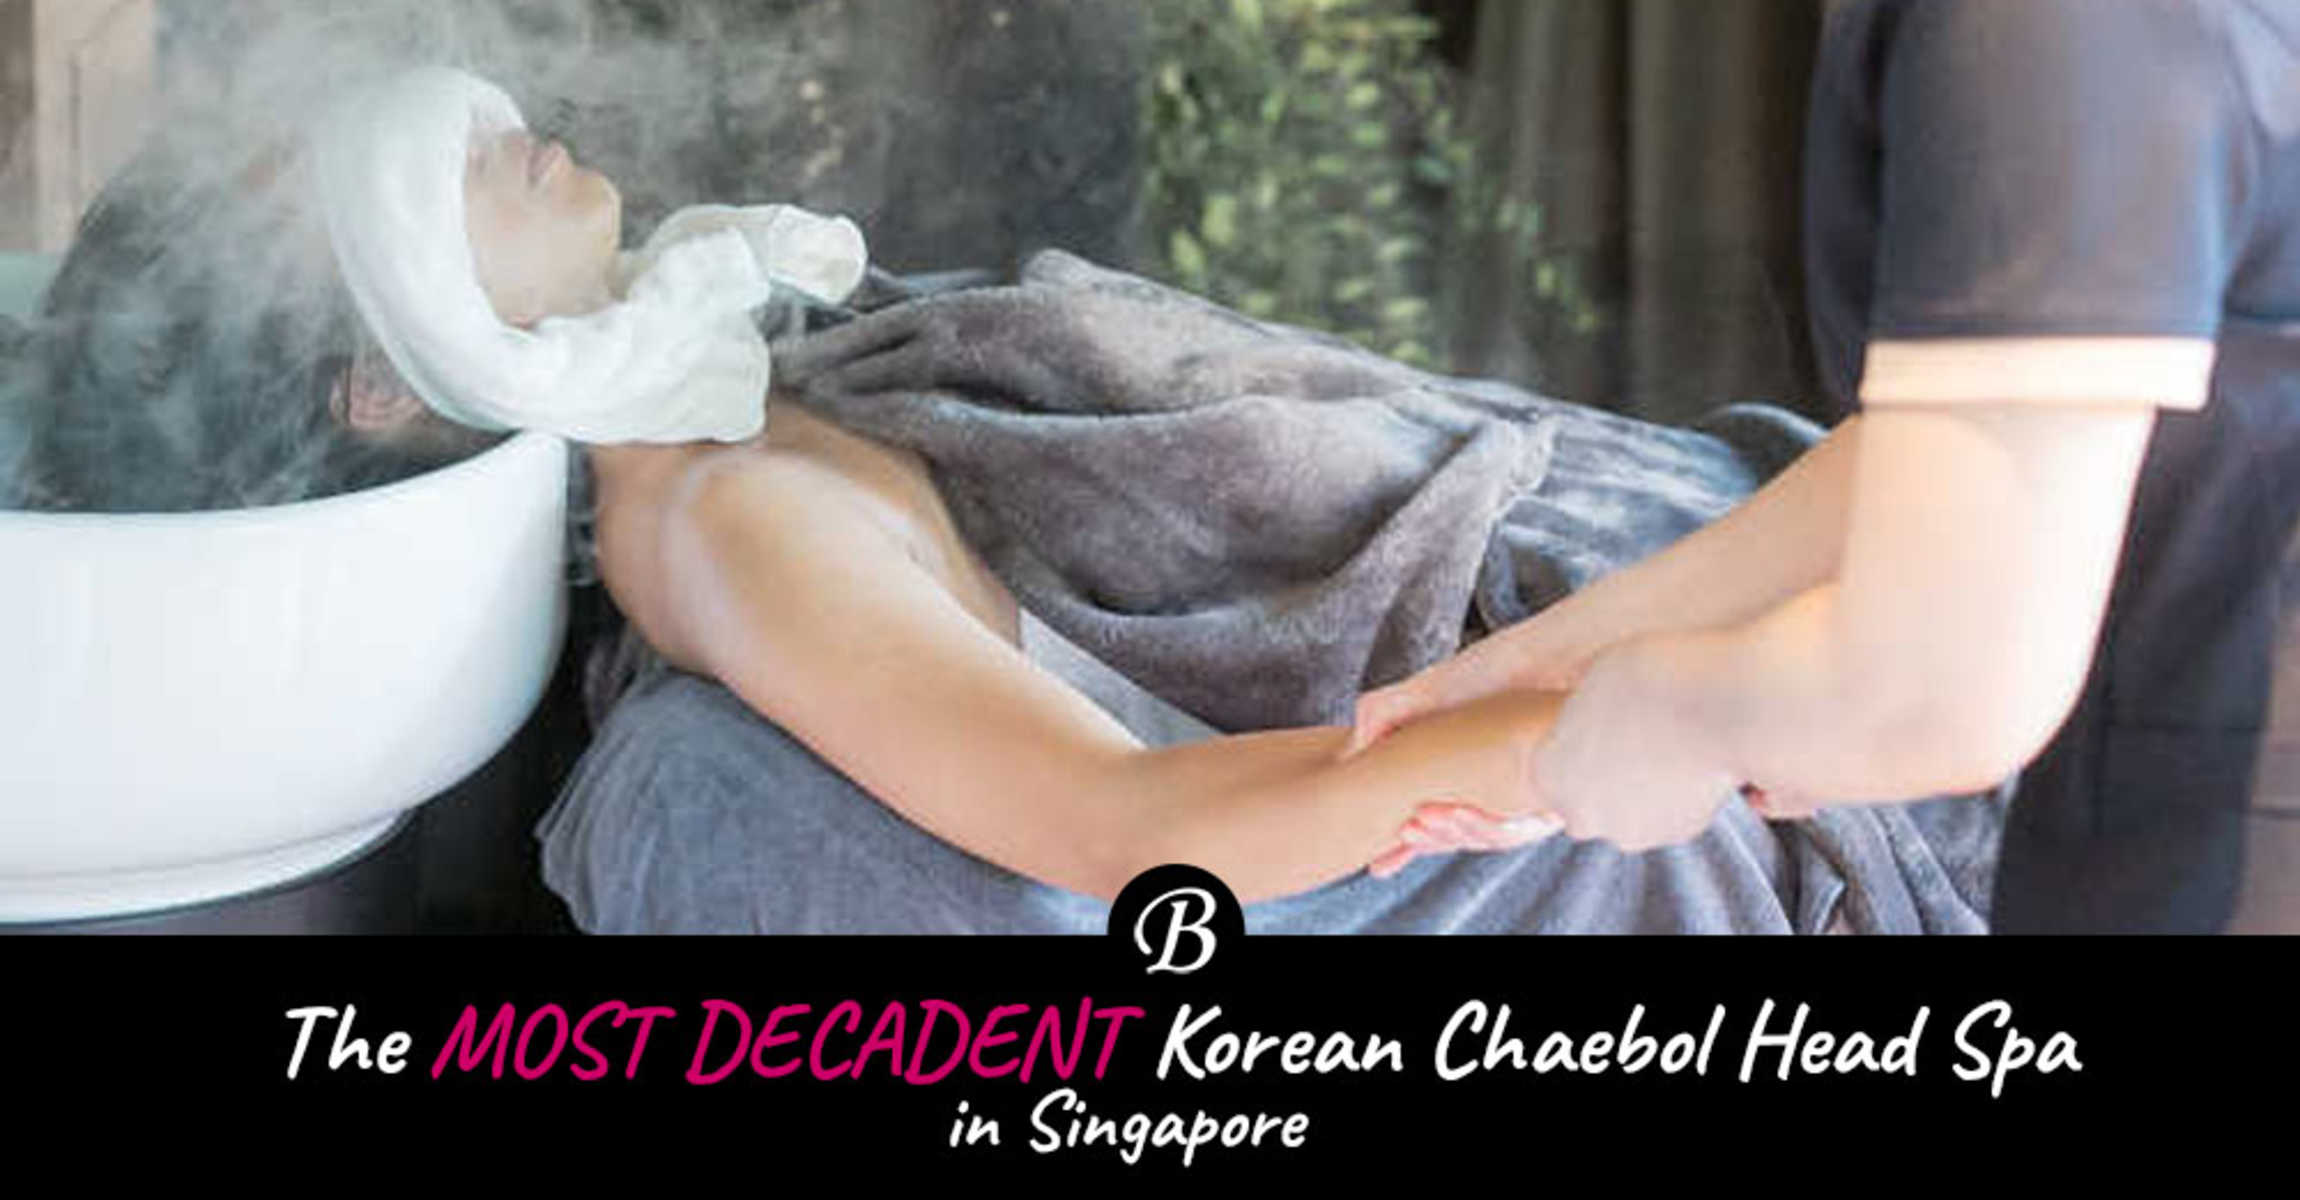 Experience The Decadent Chaebol Lifestyle with LeeKaJa's Heavenly Head Spa and Hair Treatment Here in Singapore!